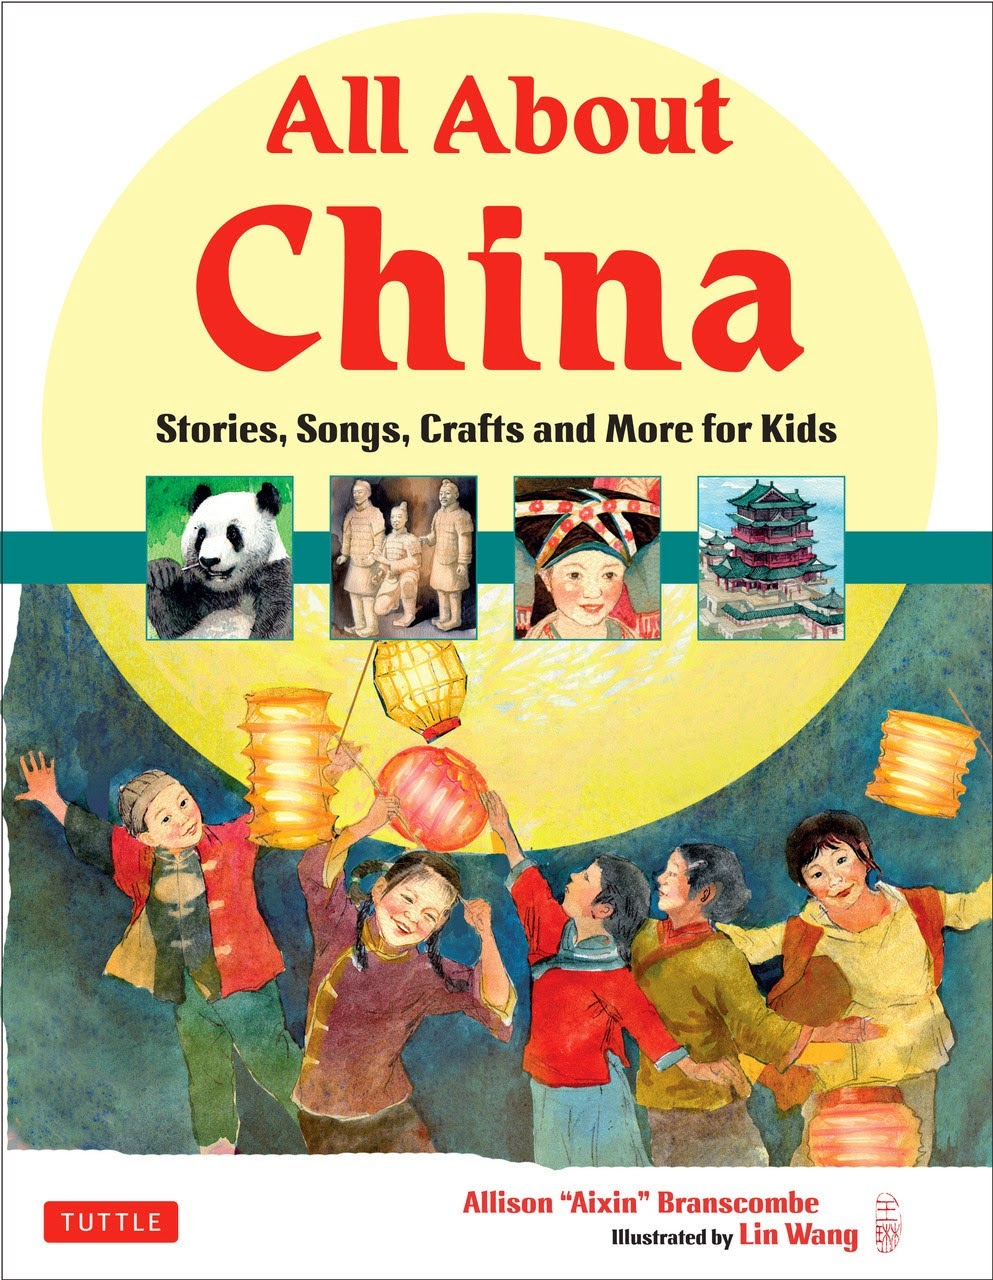 All About China Book Review for Multicultural Children's Book Day